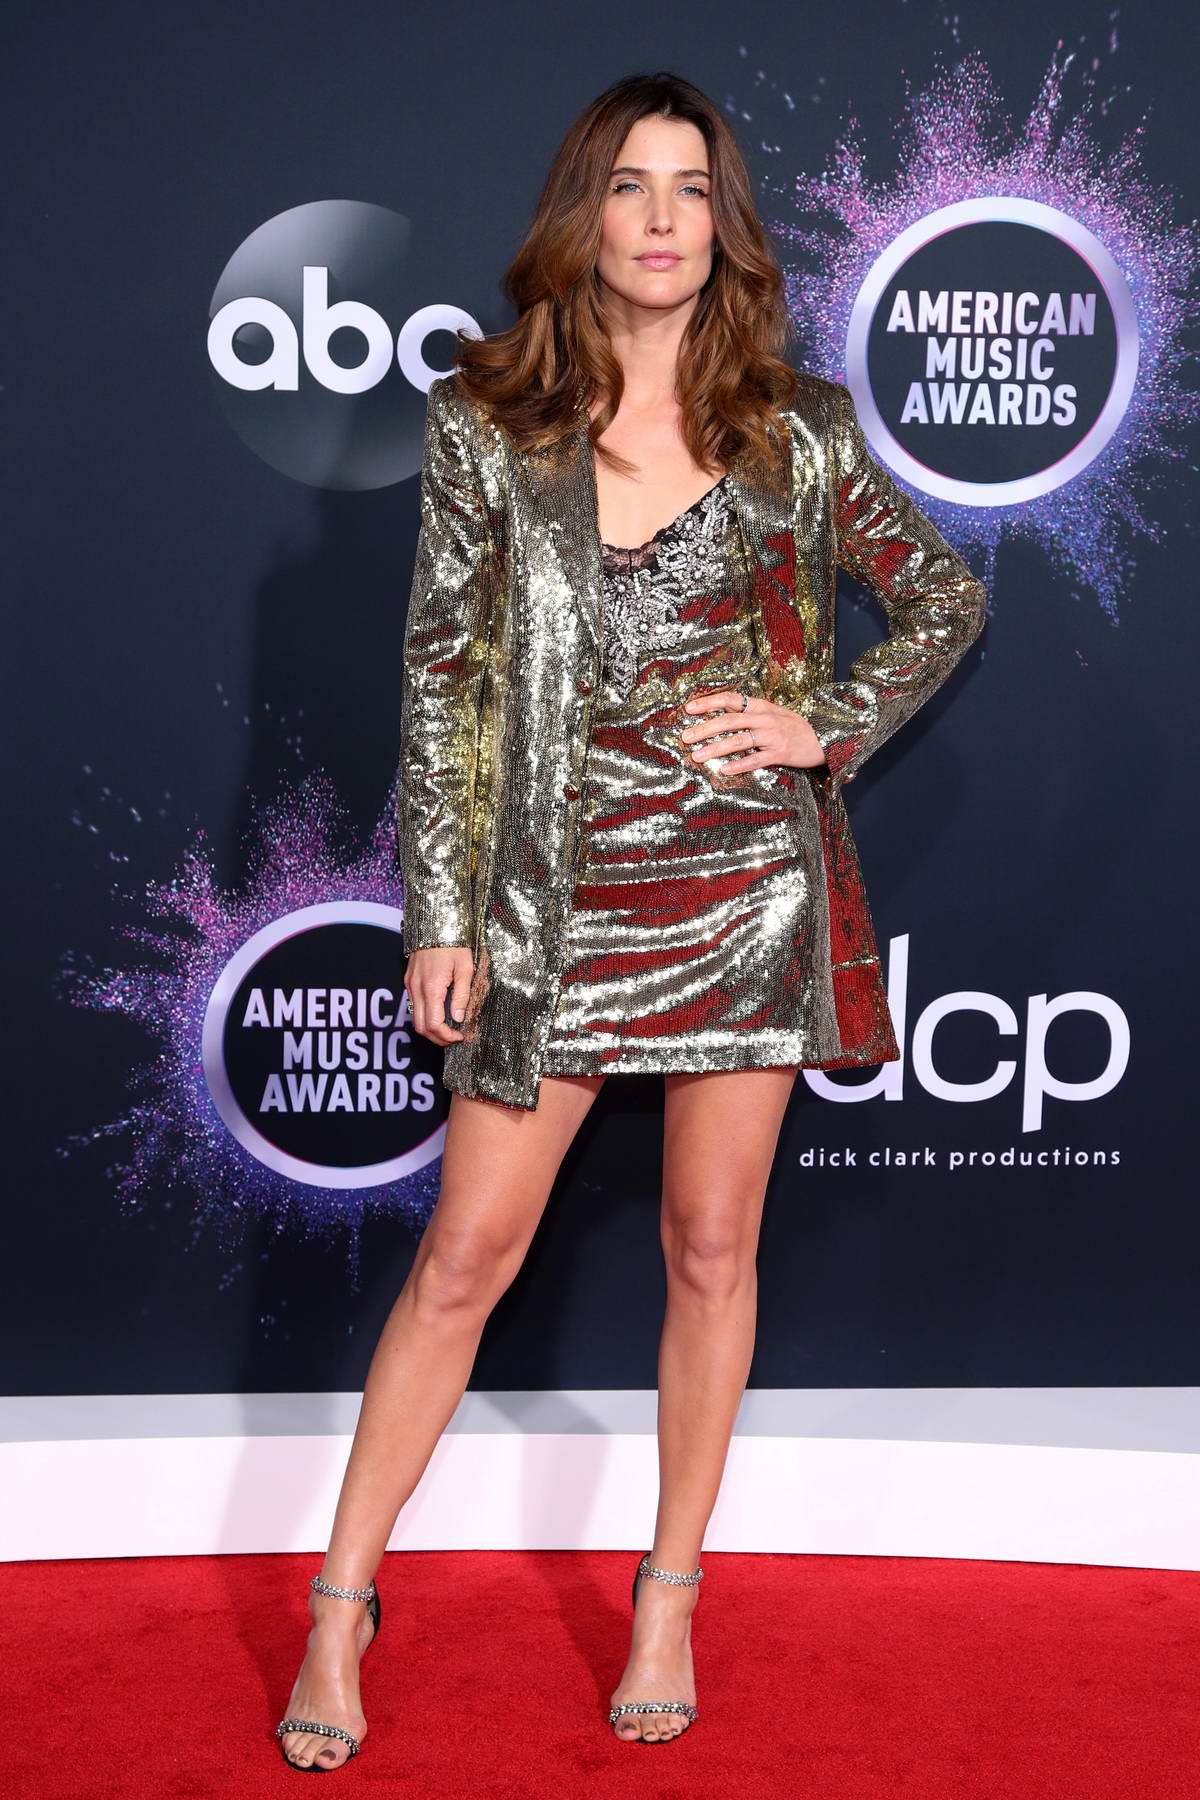 Cobie Smulders Attends The American Music Awards At